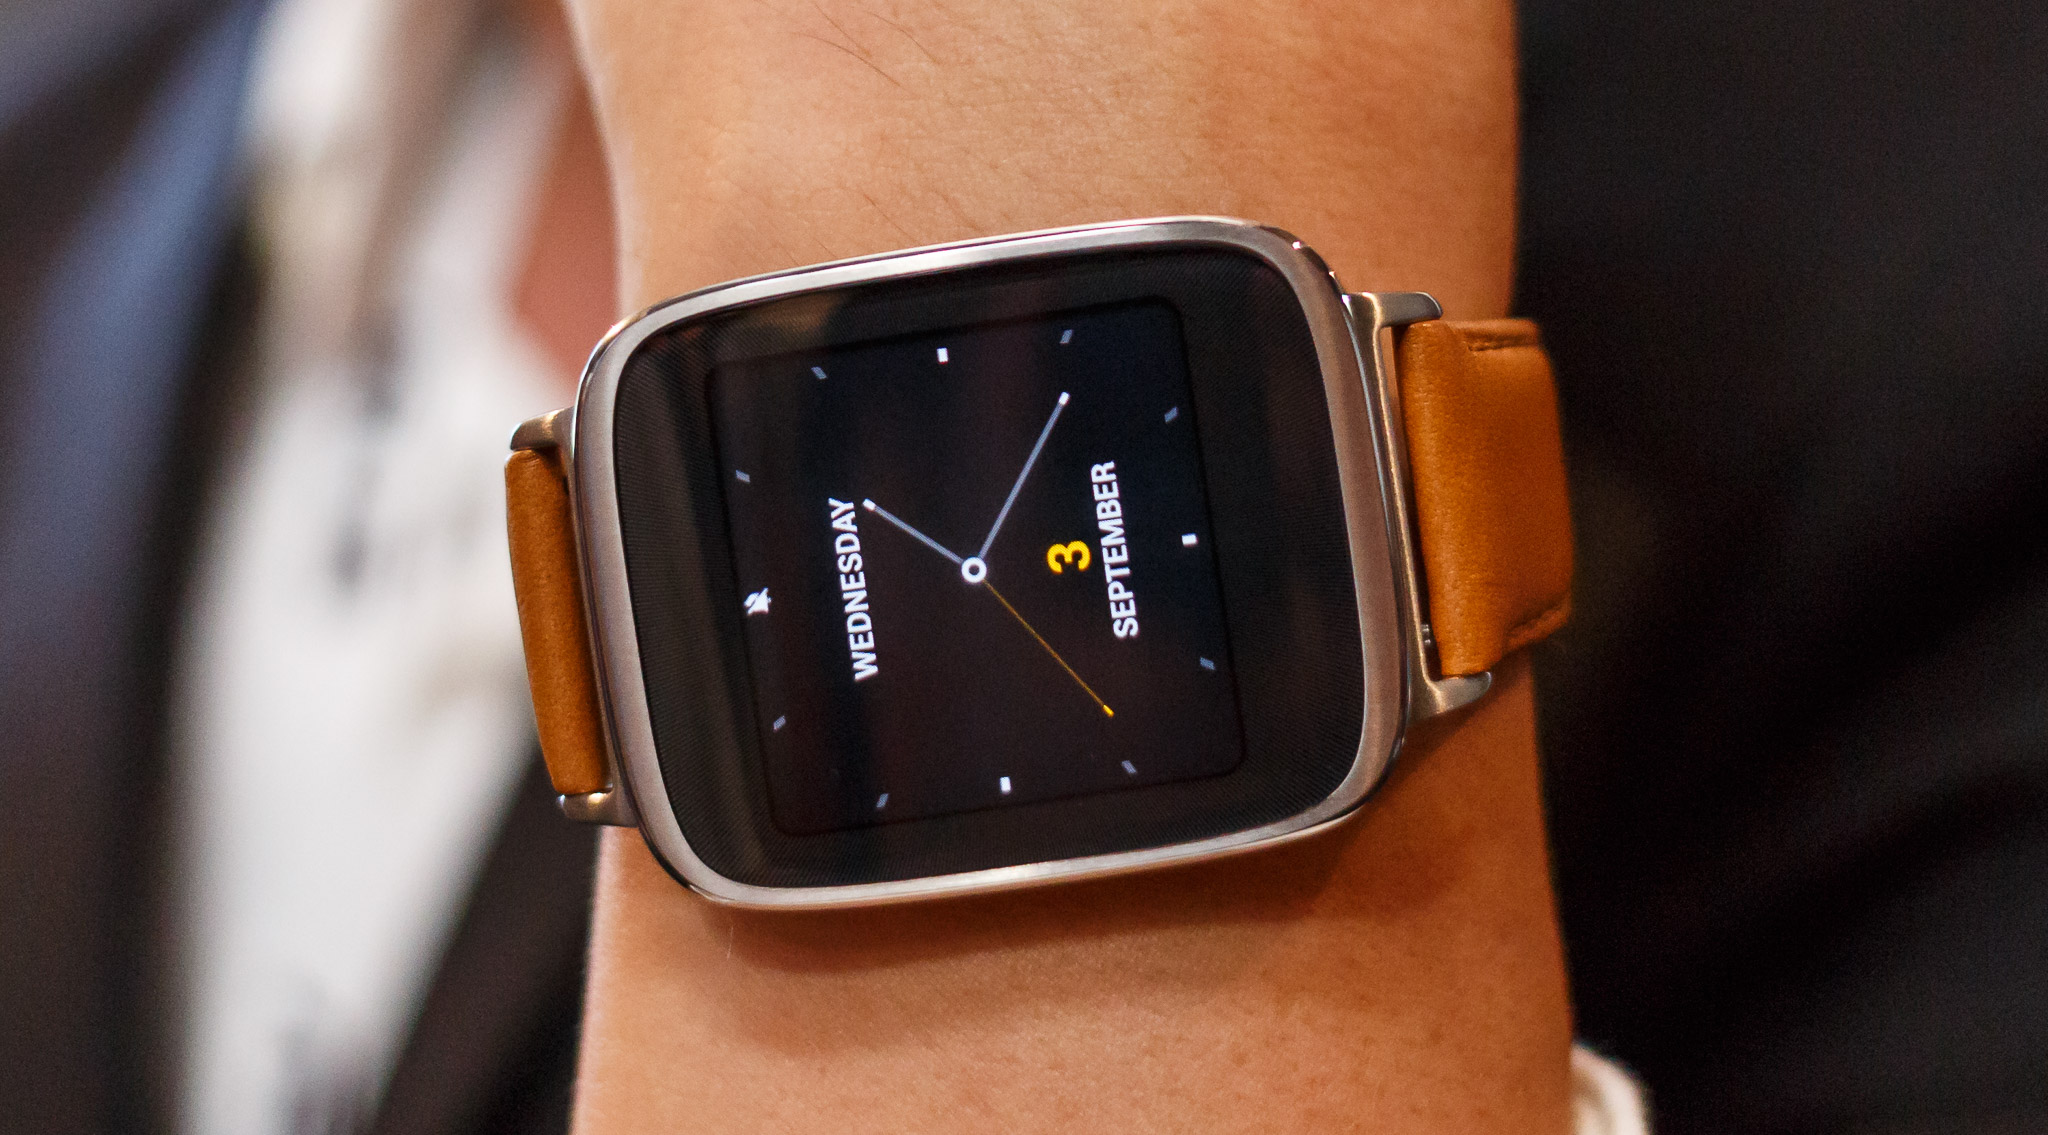 The Asus ZenWatch's screen can show the time, notifications, navigation instructions, music player controls, heart rate information, and more.